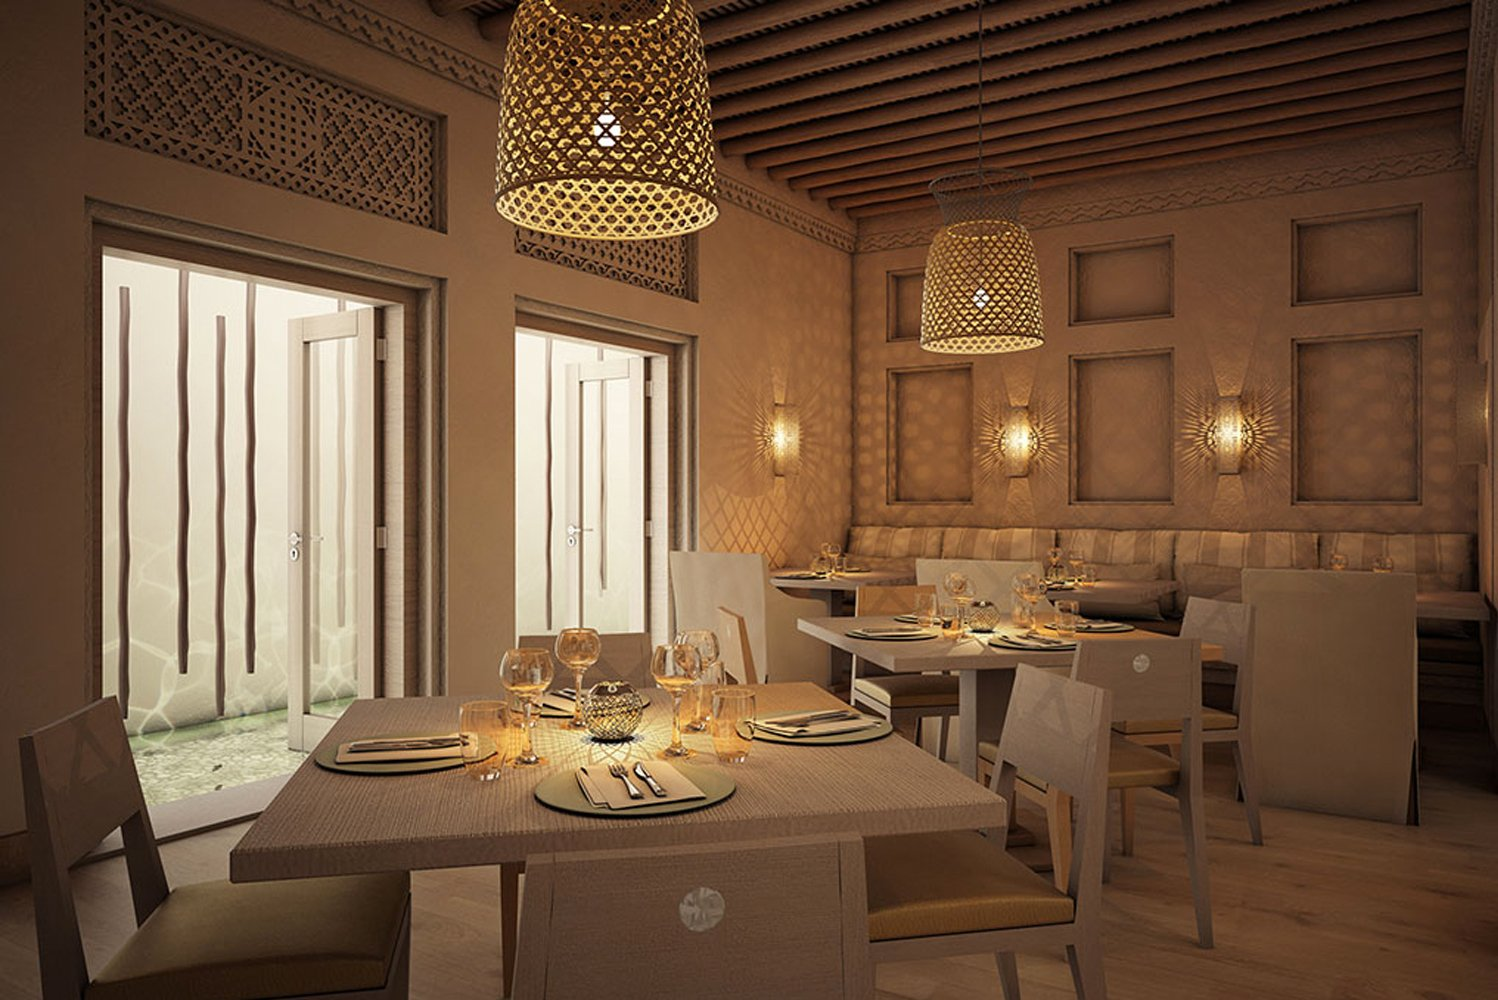 The architecture and interior design reflect the influence of Arabic culture, and mirror the aesthetic of the surrounding buildings in the district.